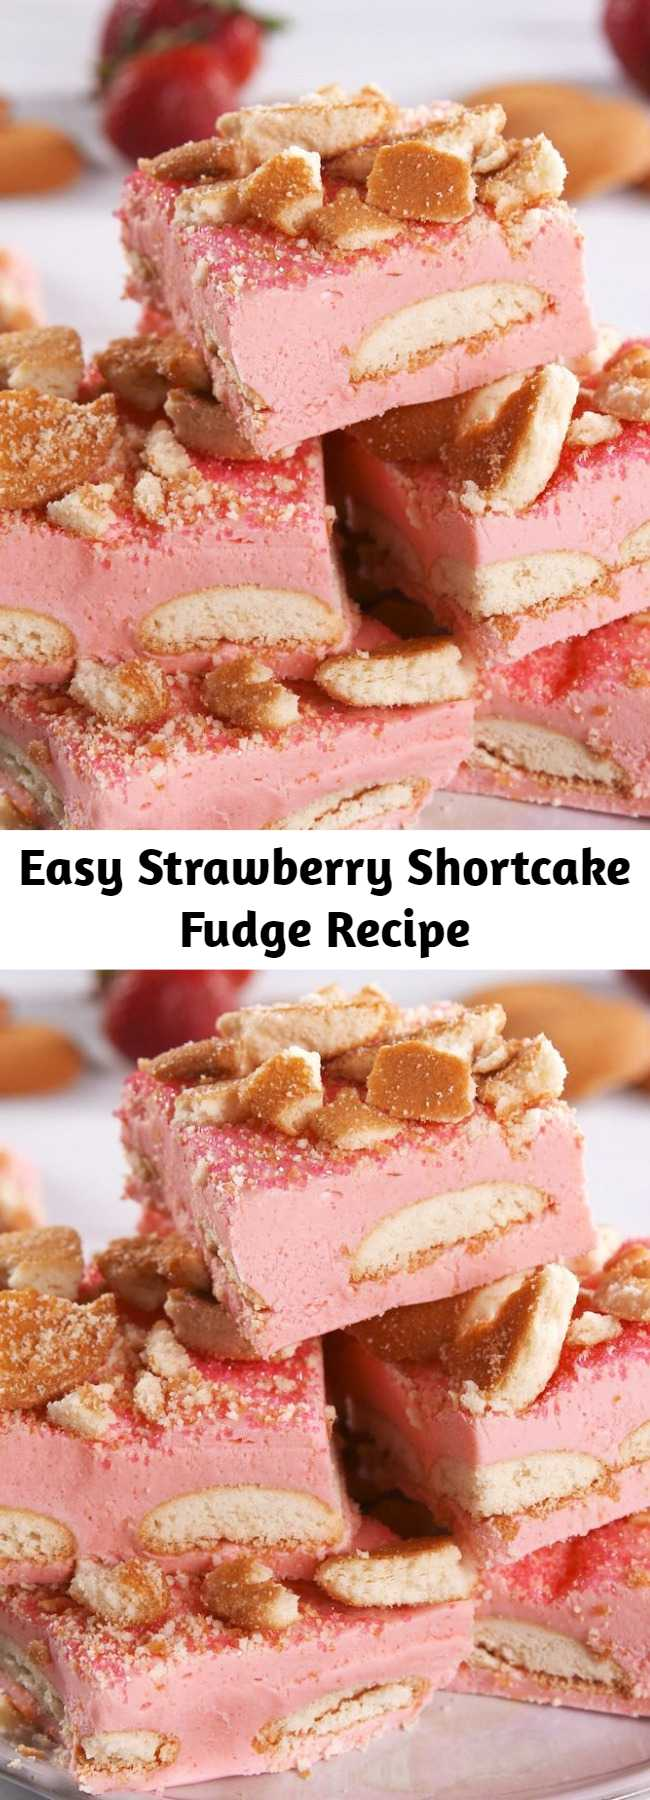 Easy Strawberry Shortcake Fudge Recipe - Strawberry Shortcake Fudge is a delight to behold and to eat! How do you make fudge taste like strawberry shortcake? Easy! Simply stir in some Jell-O mix. It may sound cray, but it works wonderfully.